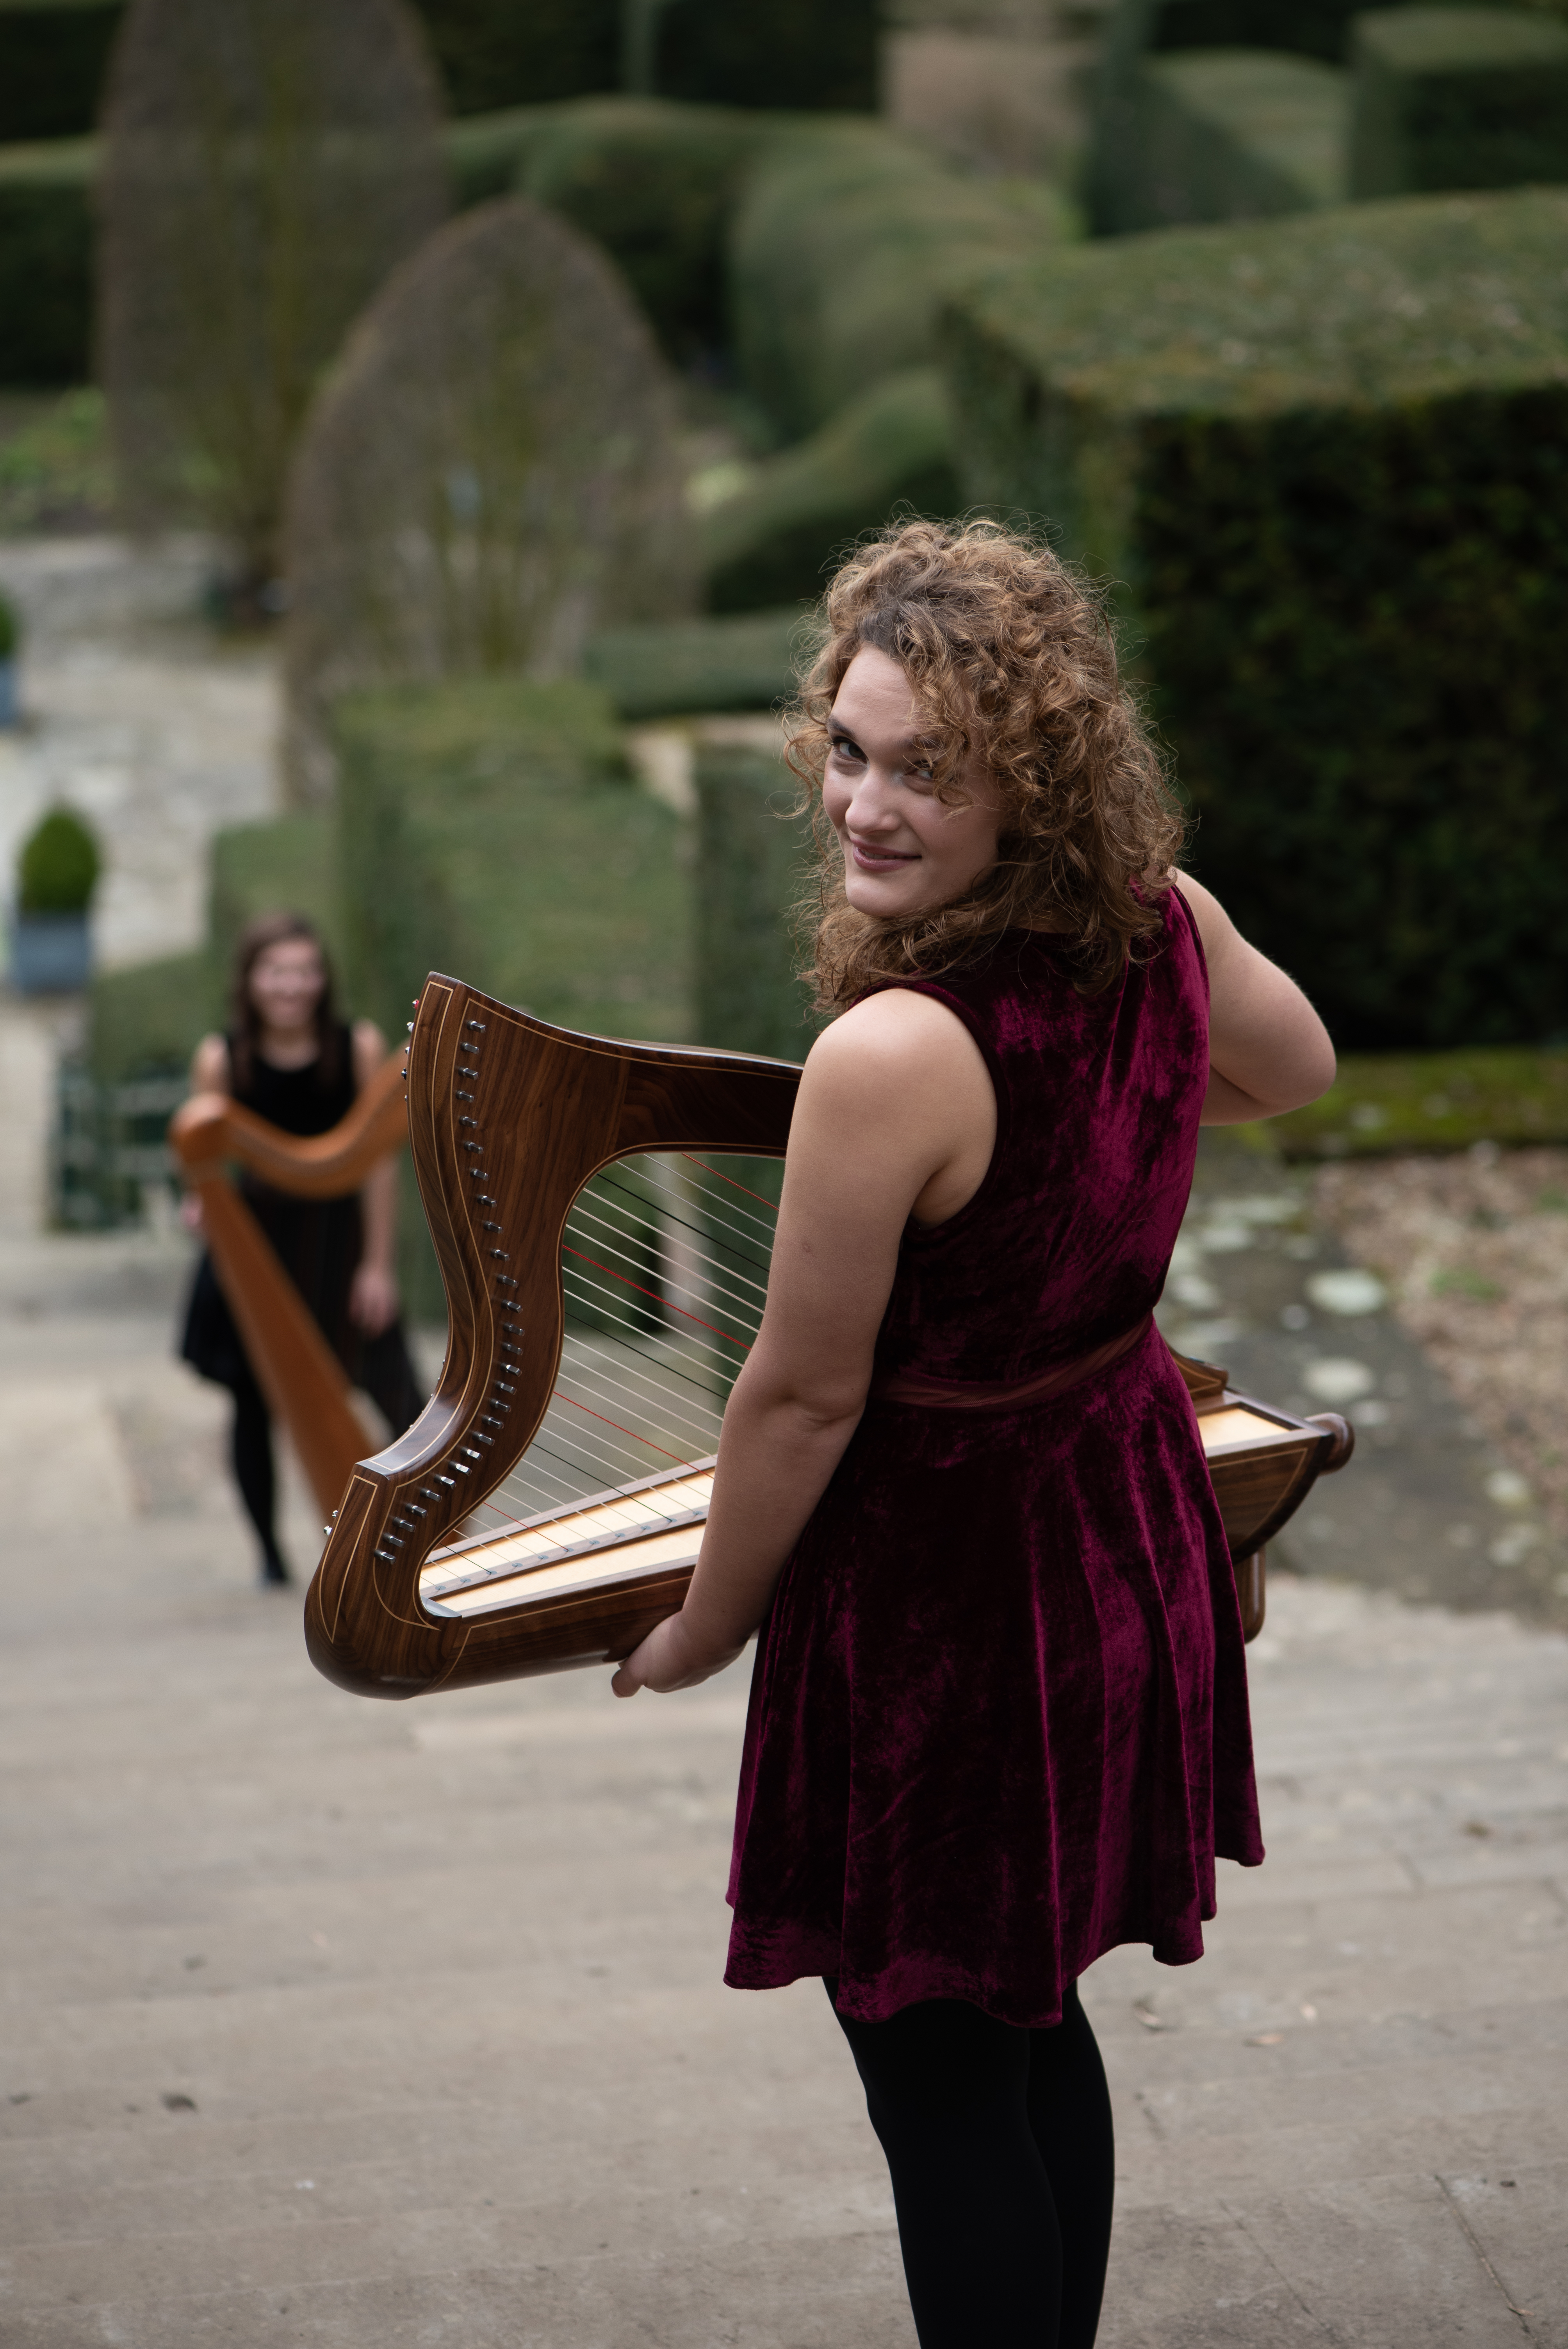 Karina looking over her shoulder holing a small harp, Adel in the background with a